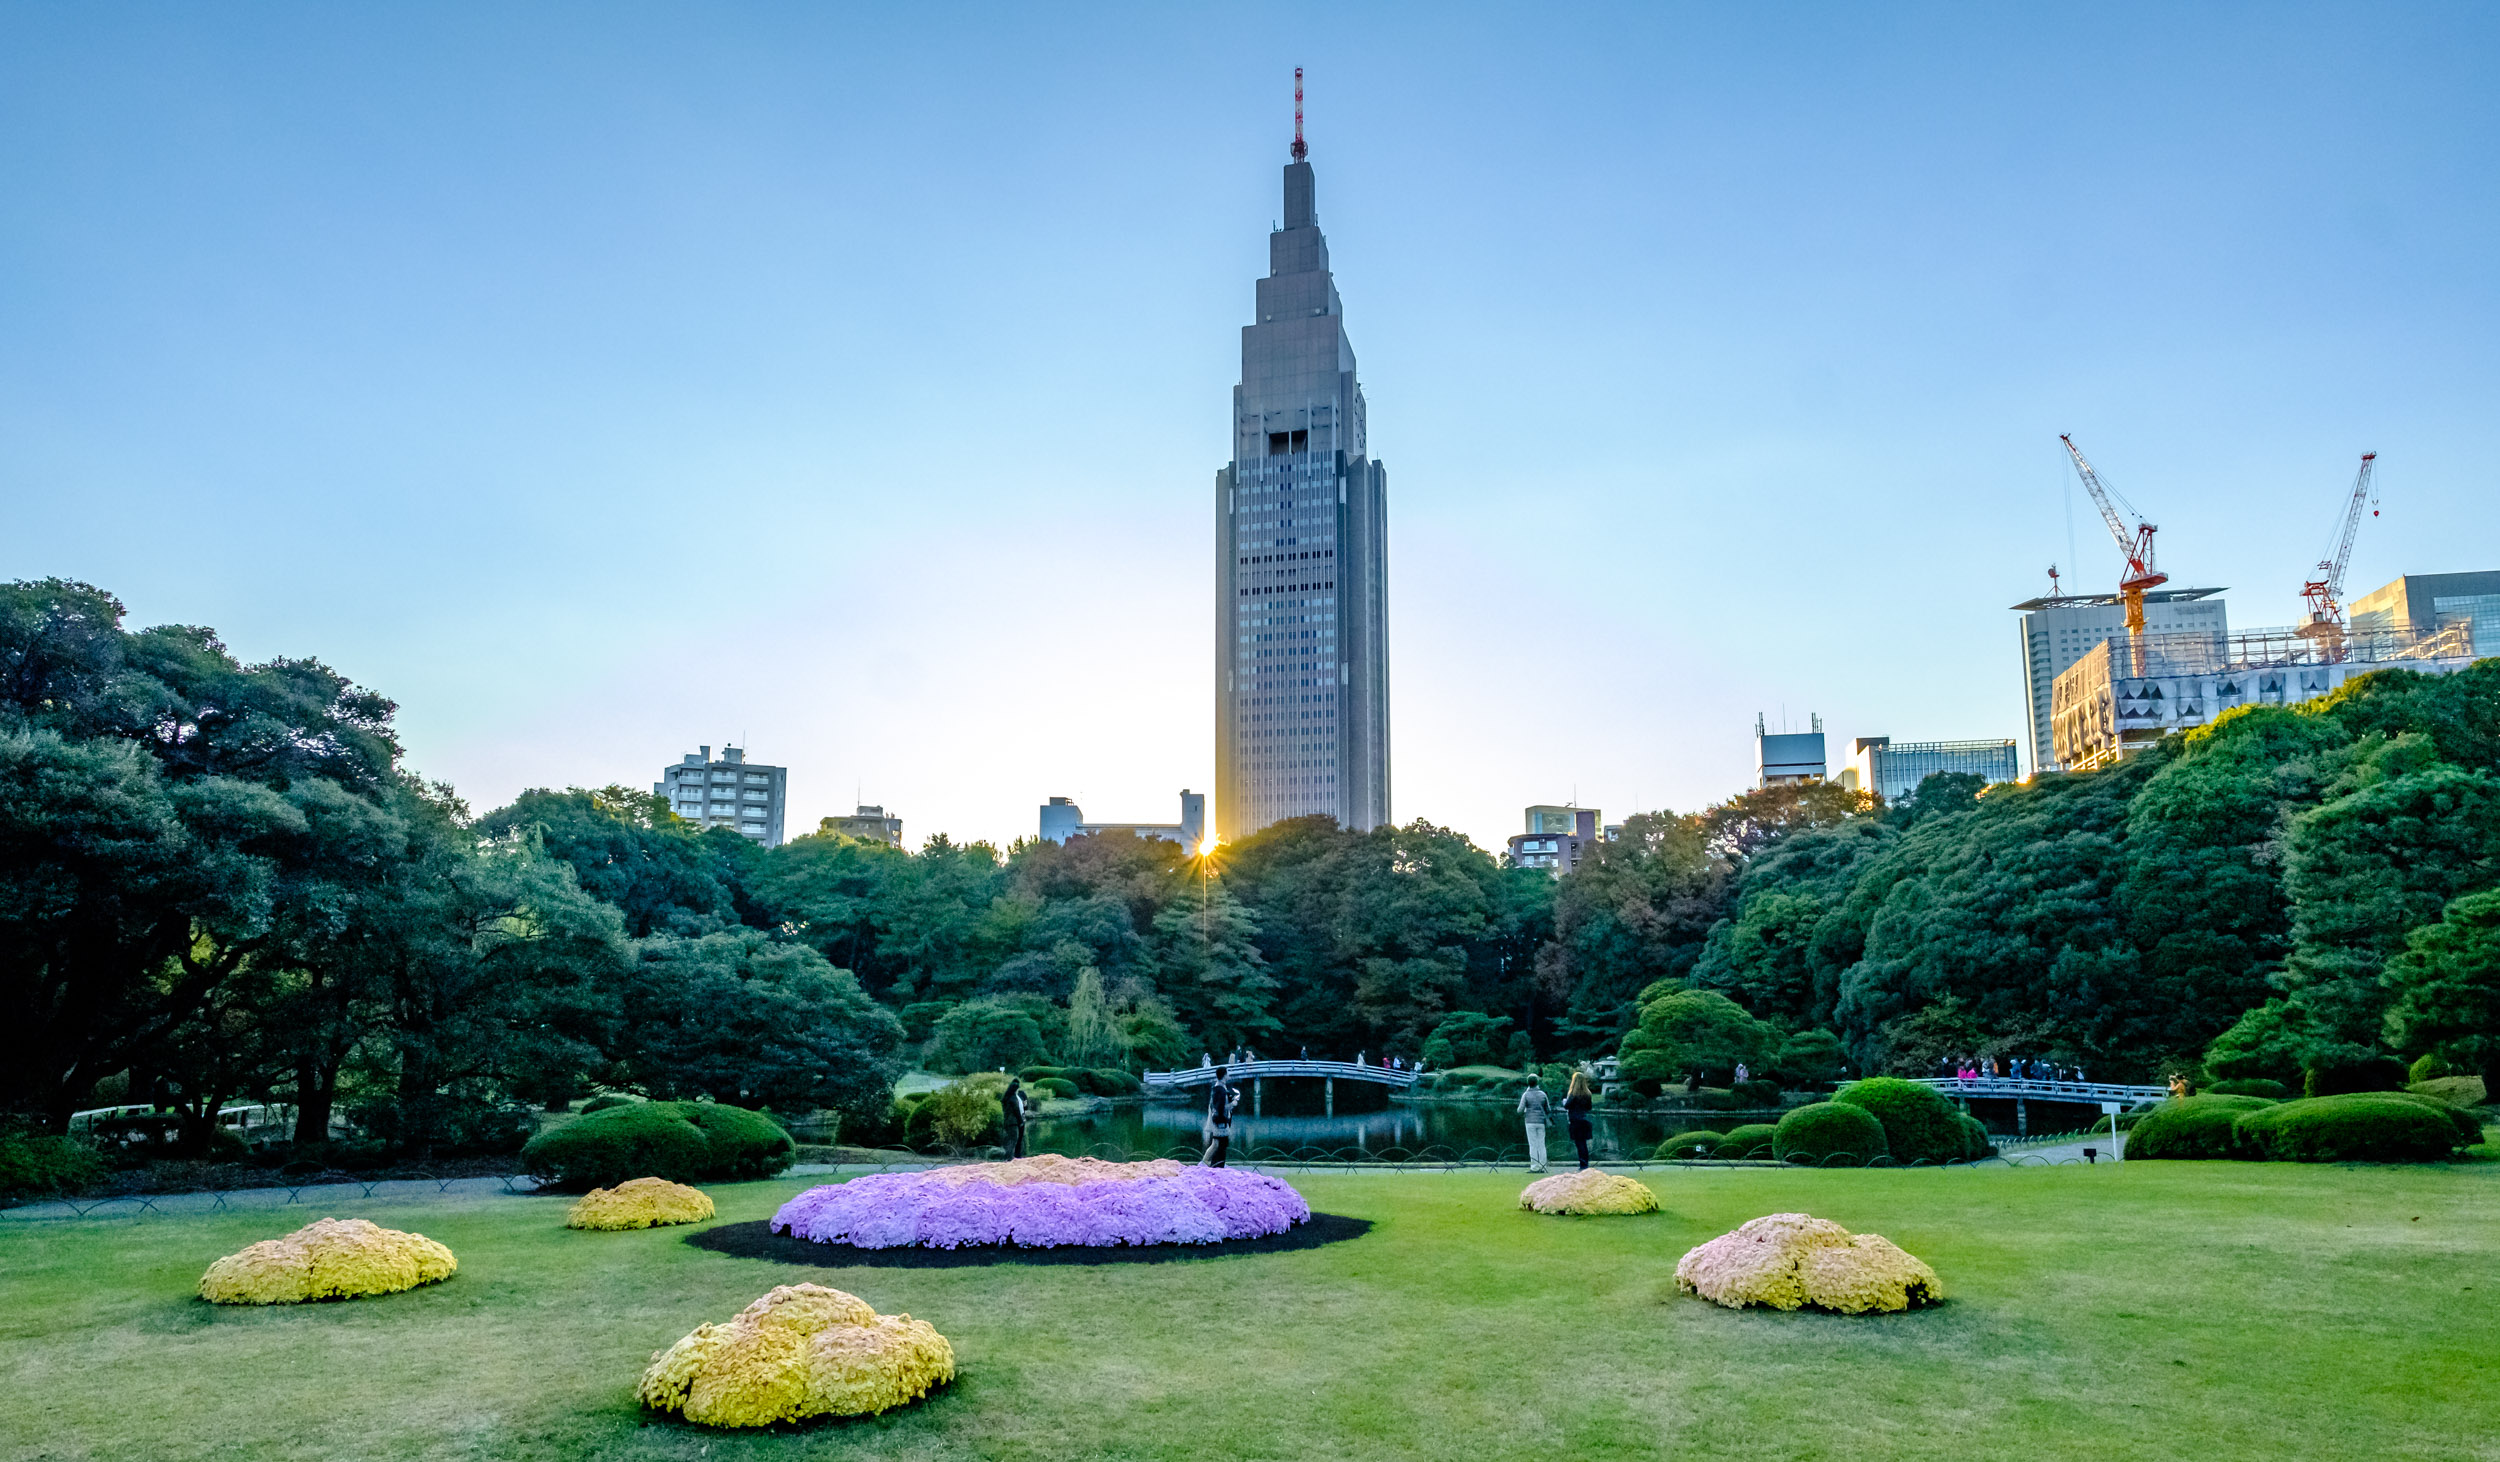 Shinjuku Gyoen and some of its chrysanthemums at sunset, with the NTT DOCOMO building behind